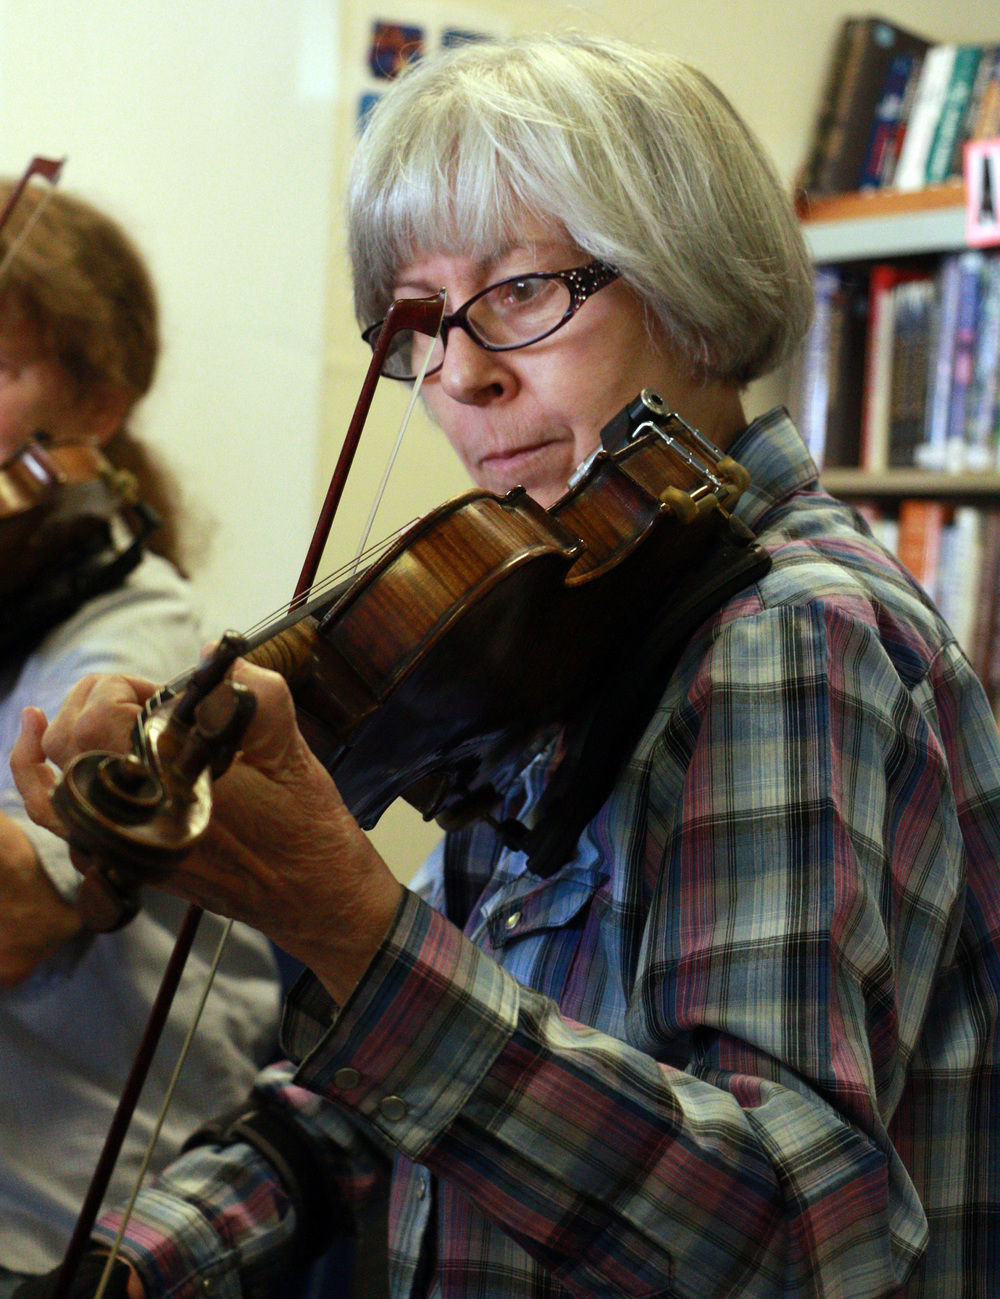 Torrington fiddlers experience 'just a bunch of fun' at monthly jam sessions